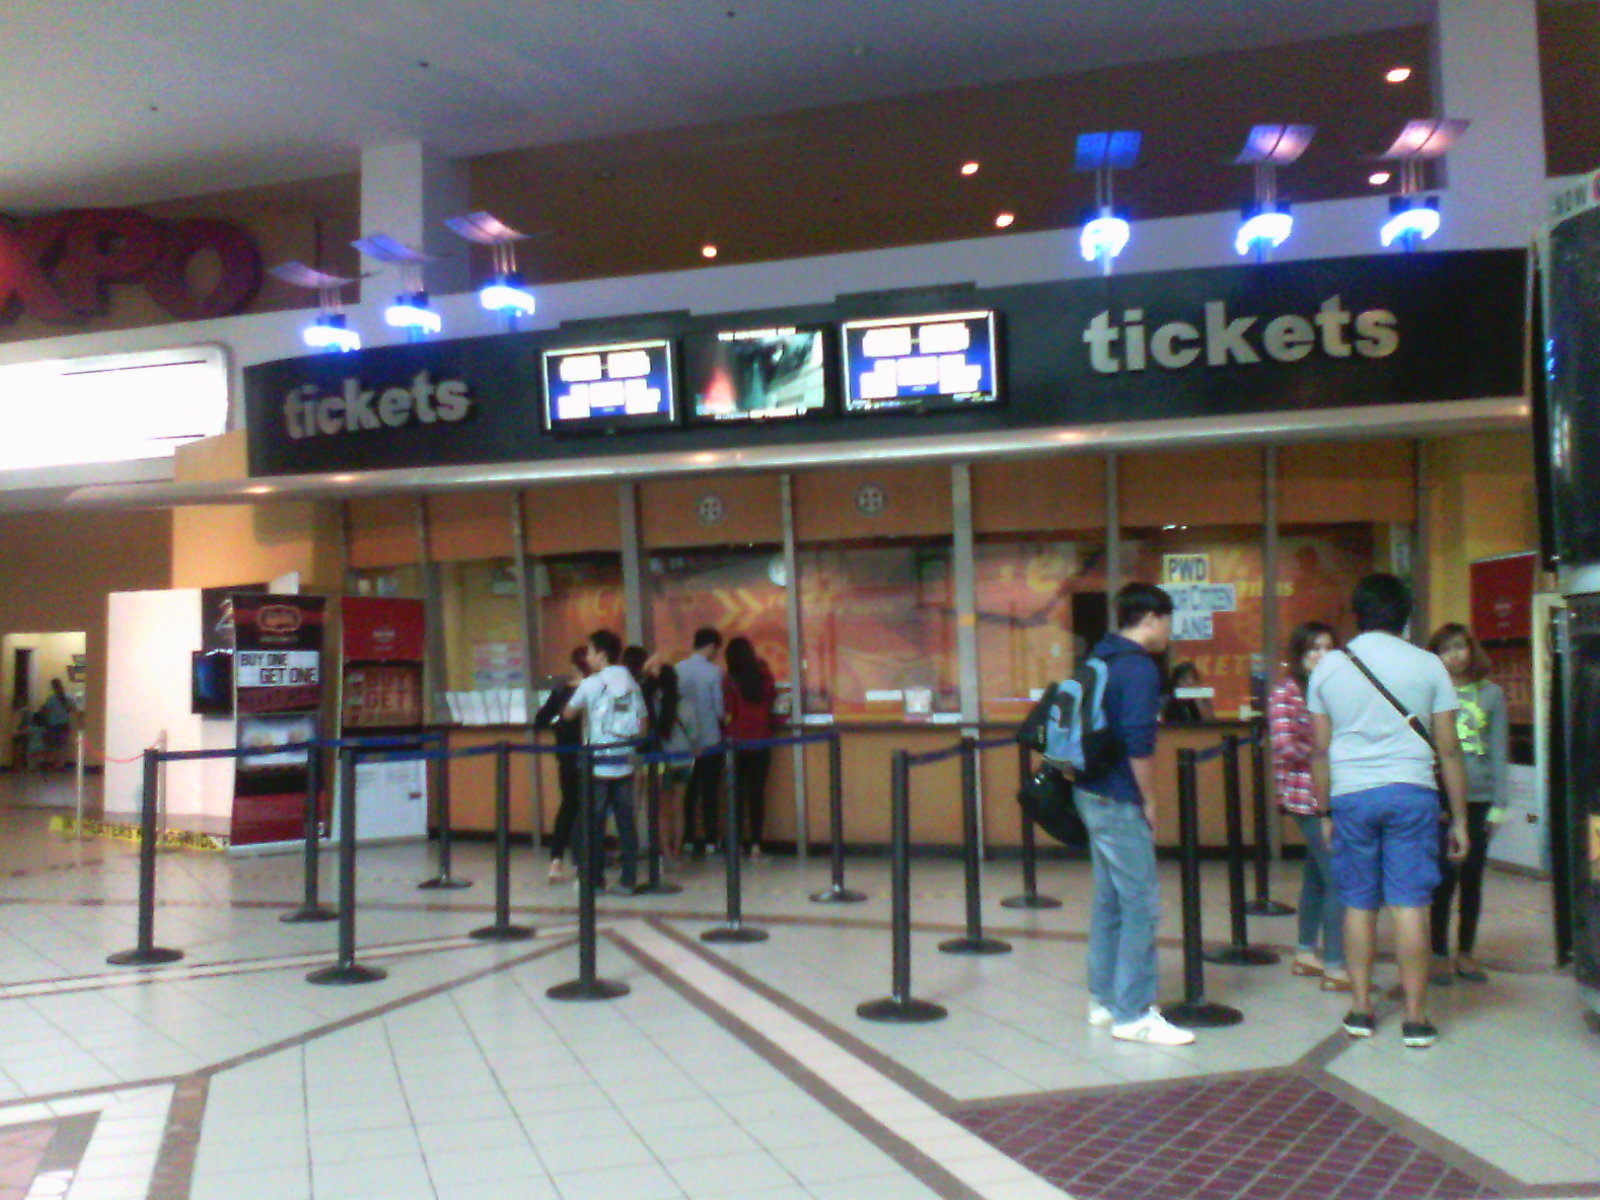 File:Festival Cinema ticket booth.jpg - Wikimedia Commons